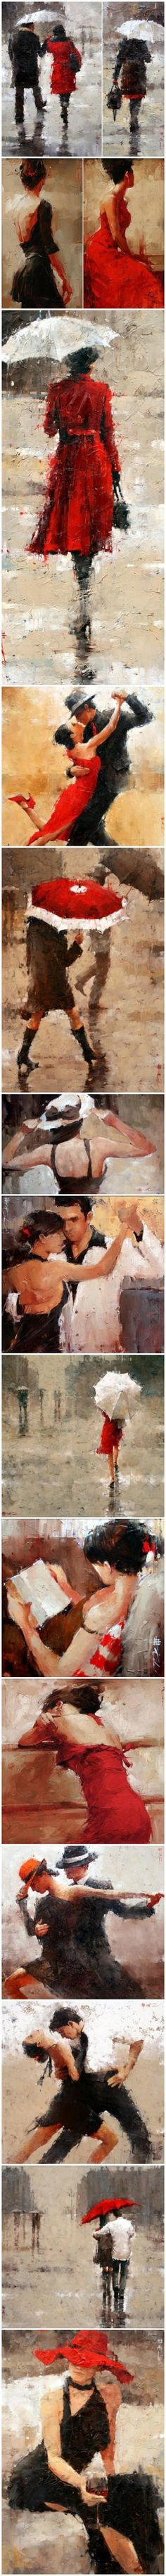 Andre Kohn...great collage of his work